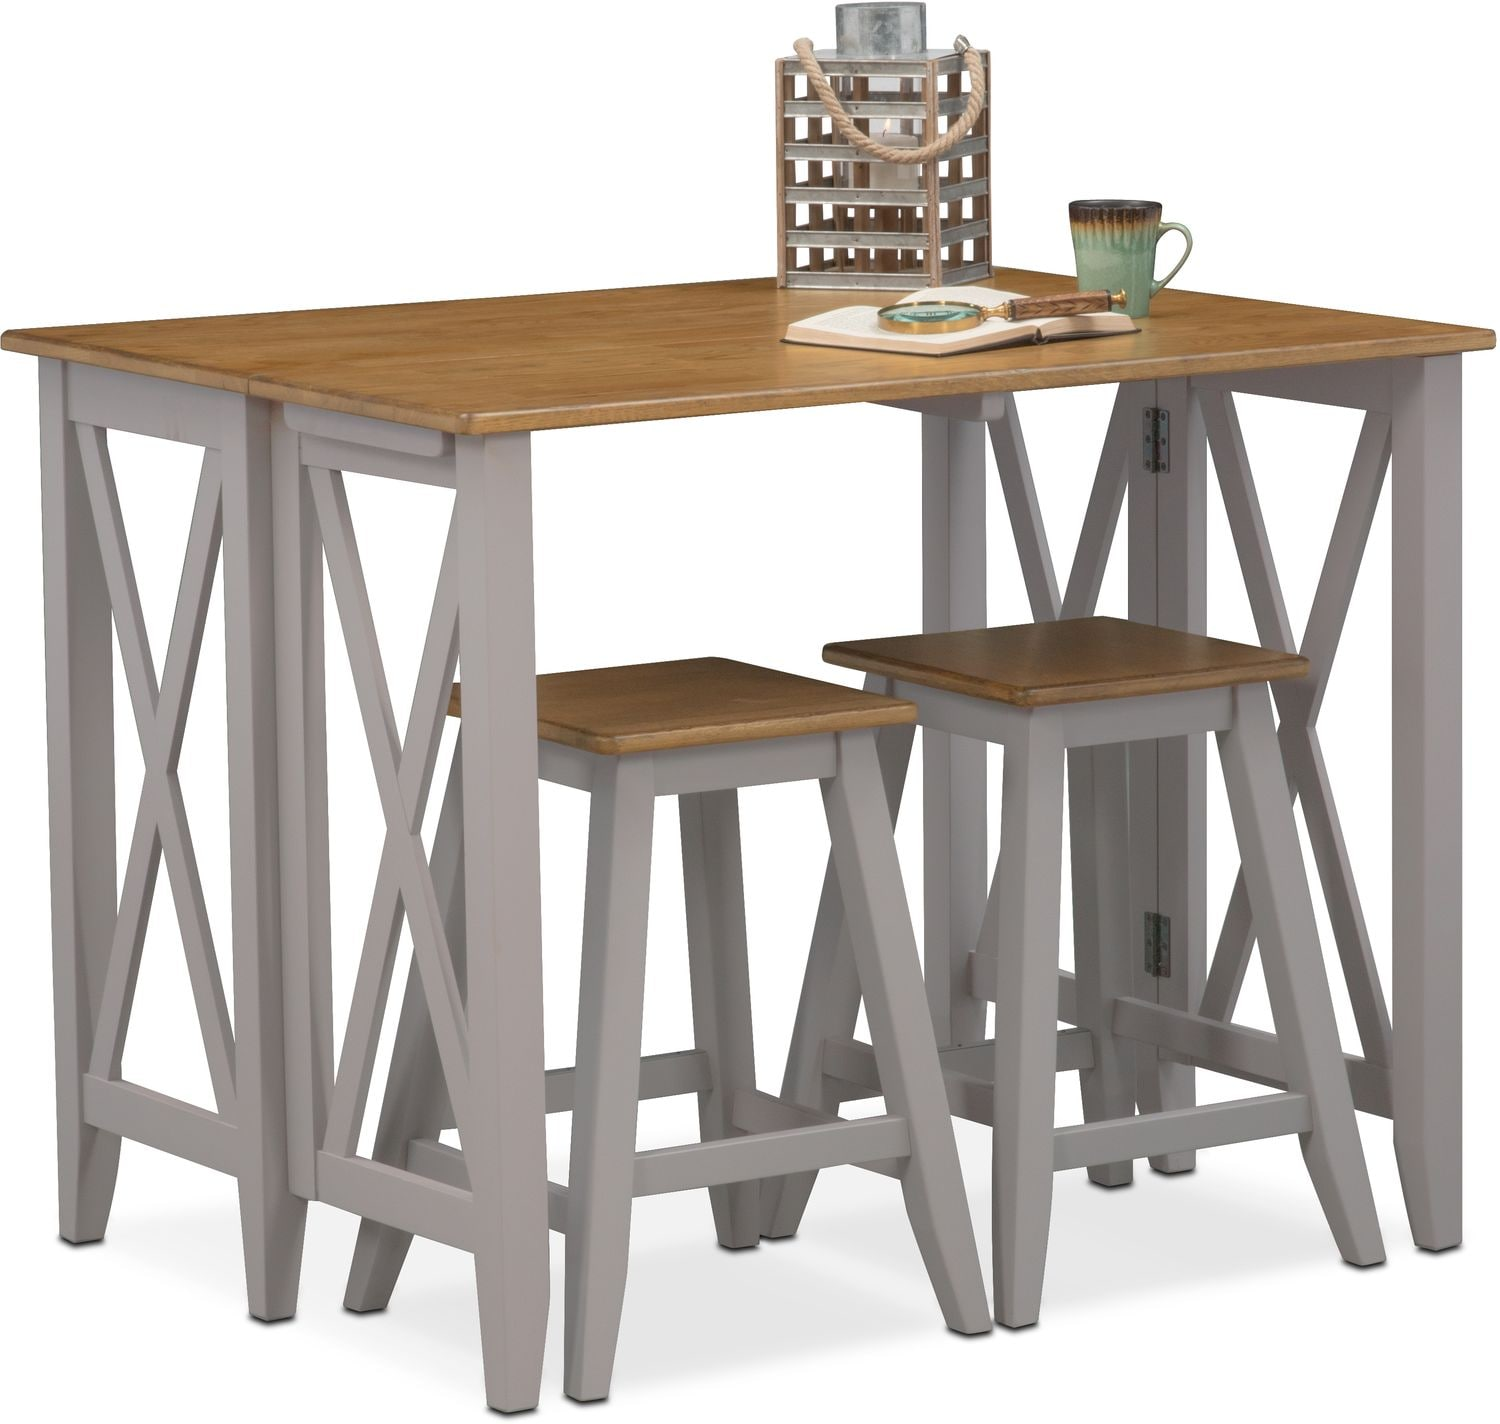 small wood cat breakfast distressed dannyskitchen size table full kitchen me refrigerator bar page chairs